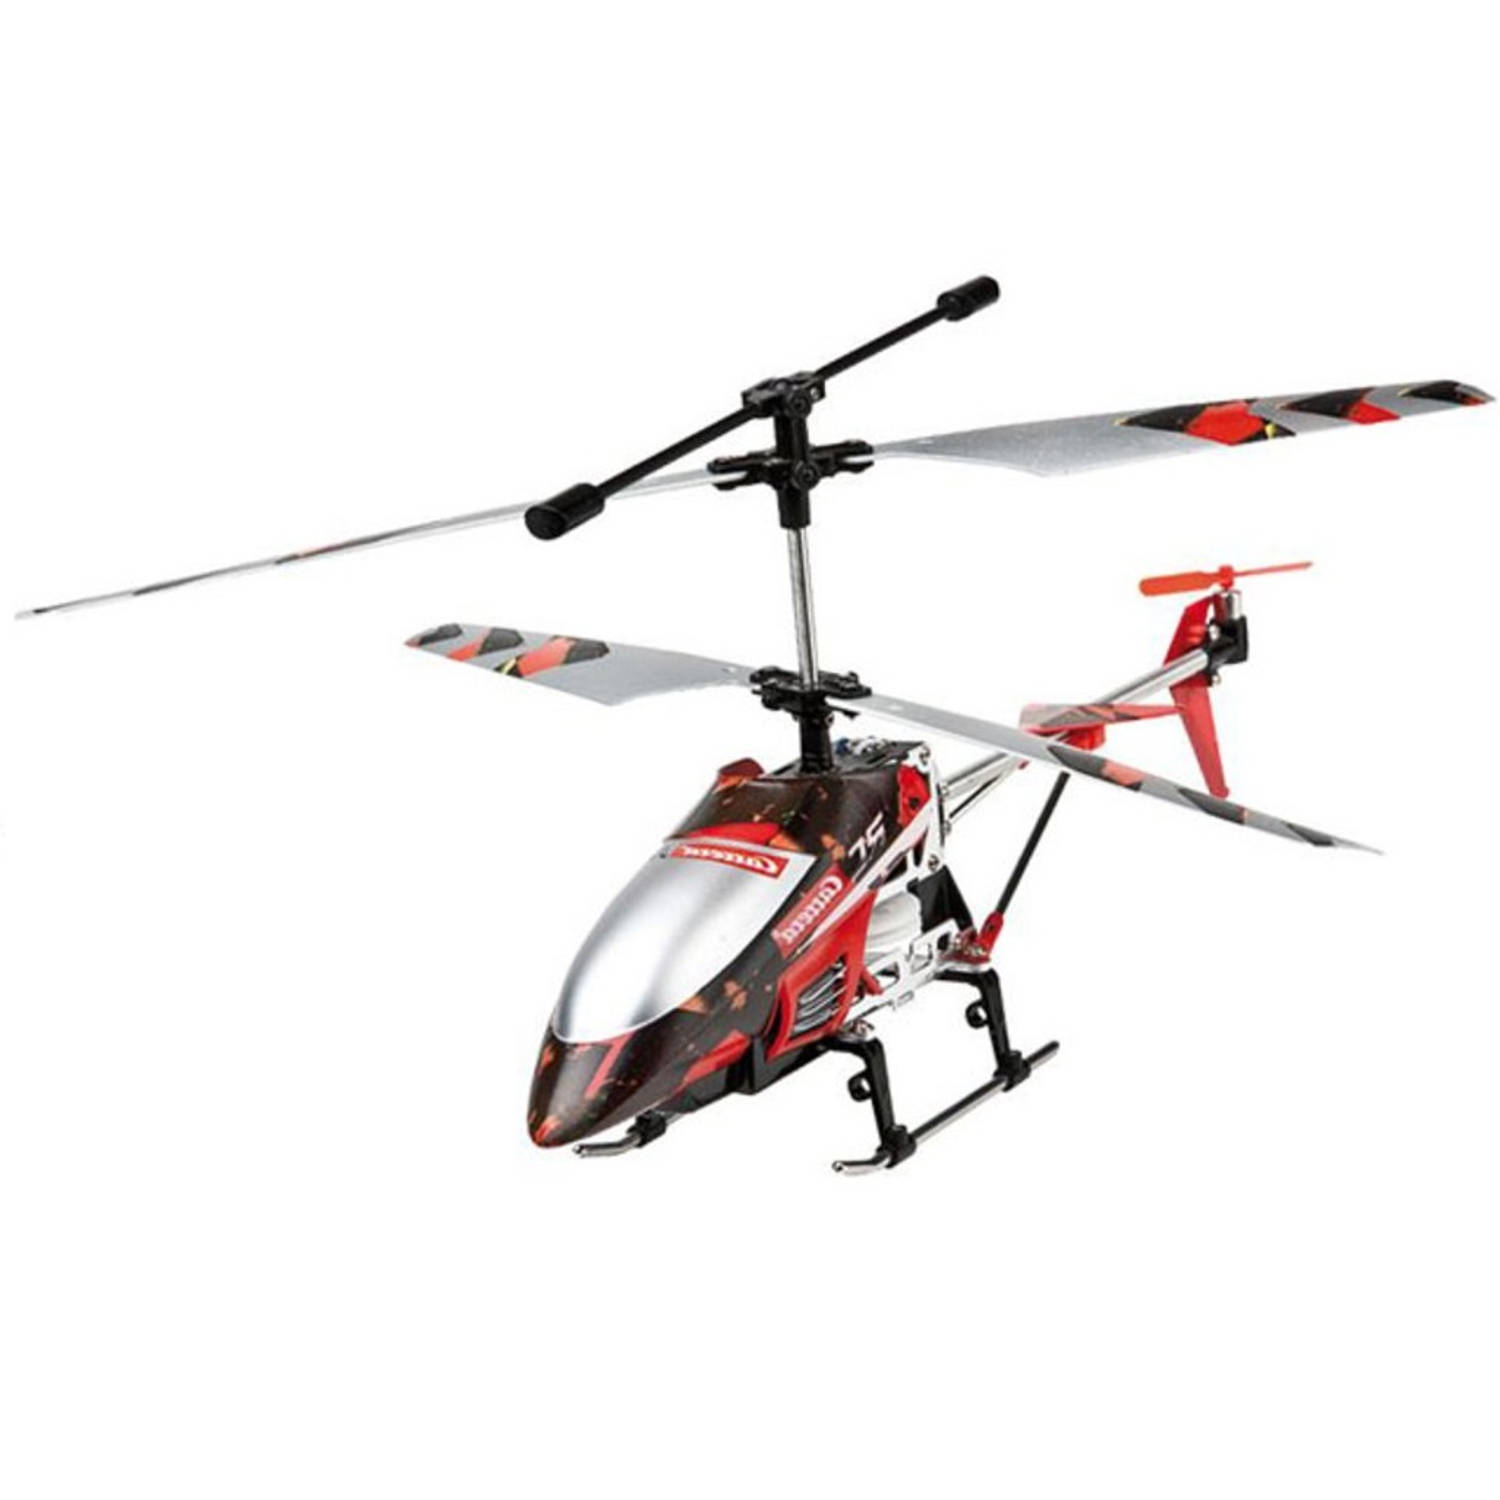 Carrera Neon Storm 2 RC helikopter rood 30 cm